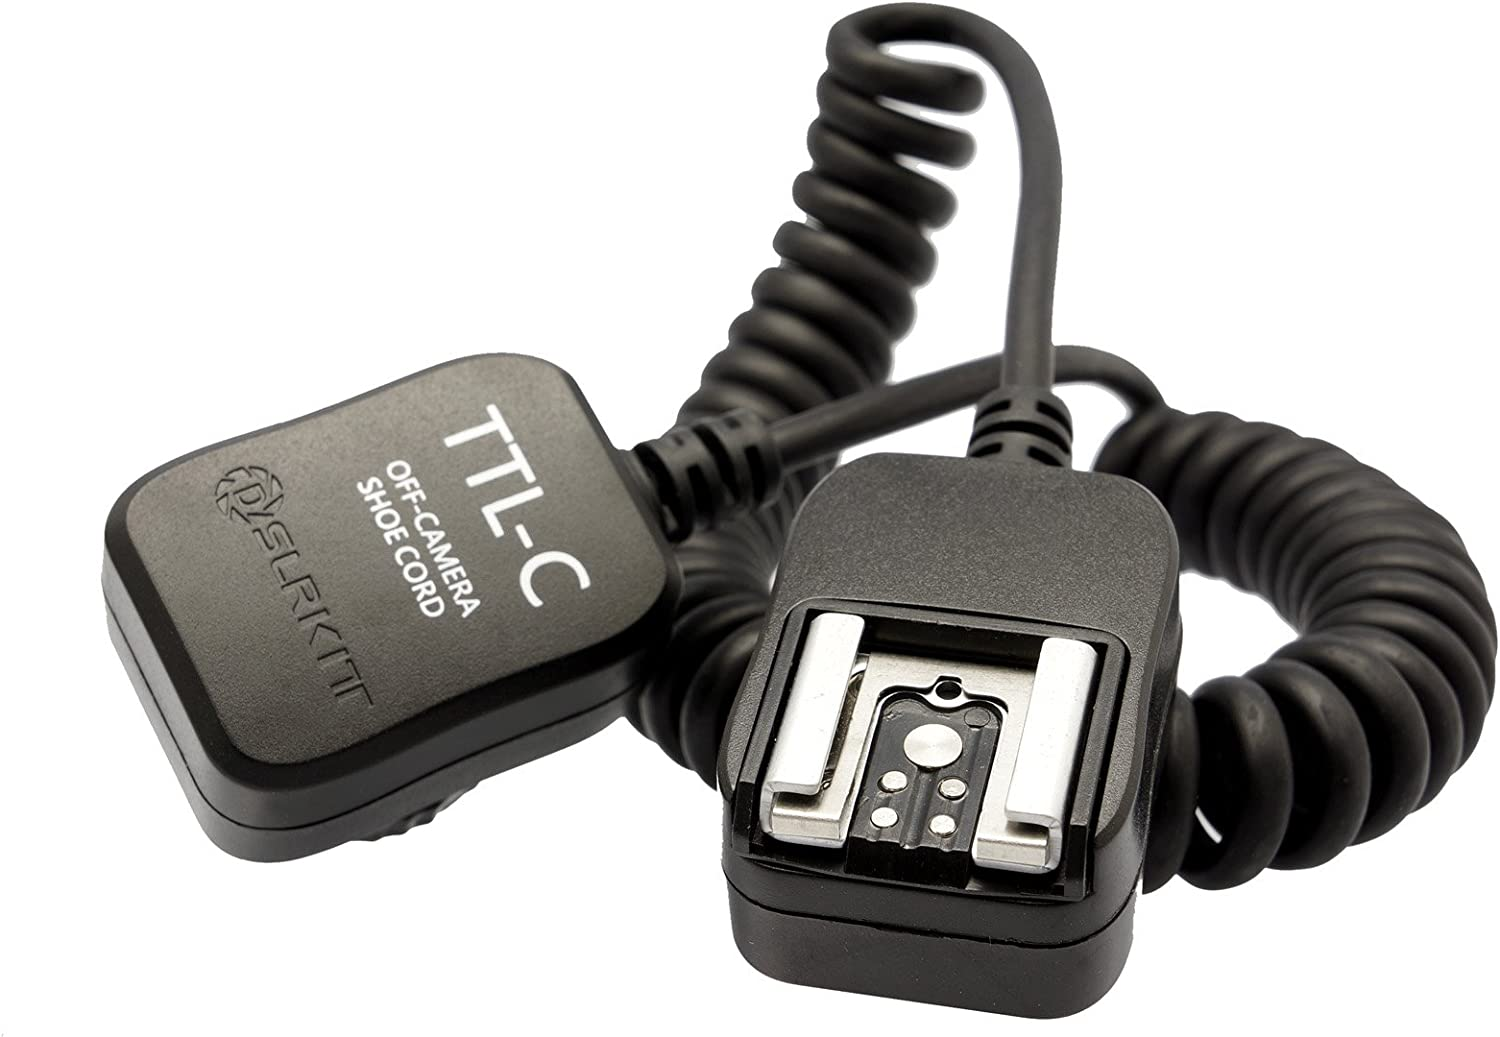 Gadget Place TTL Flash Cable for Canon Rebel T5 EOS 1200D